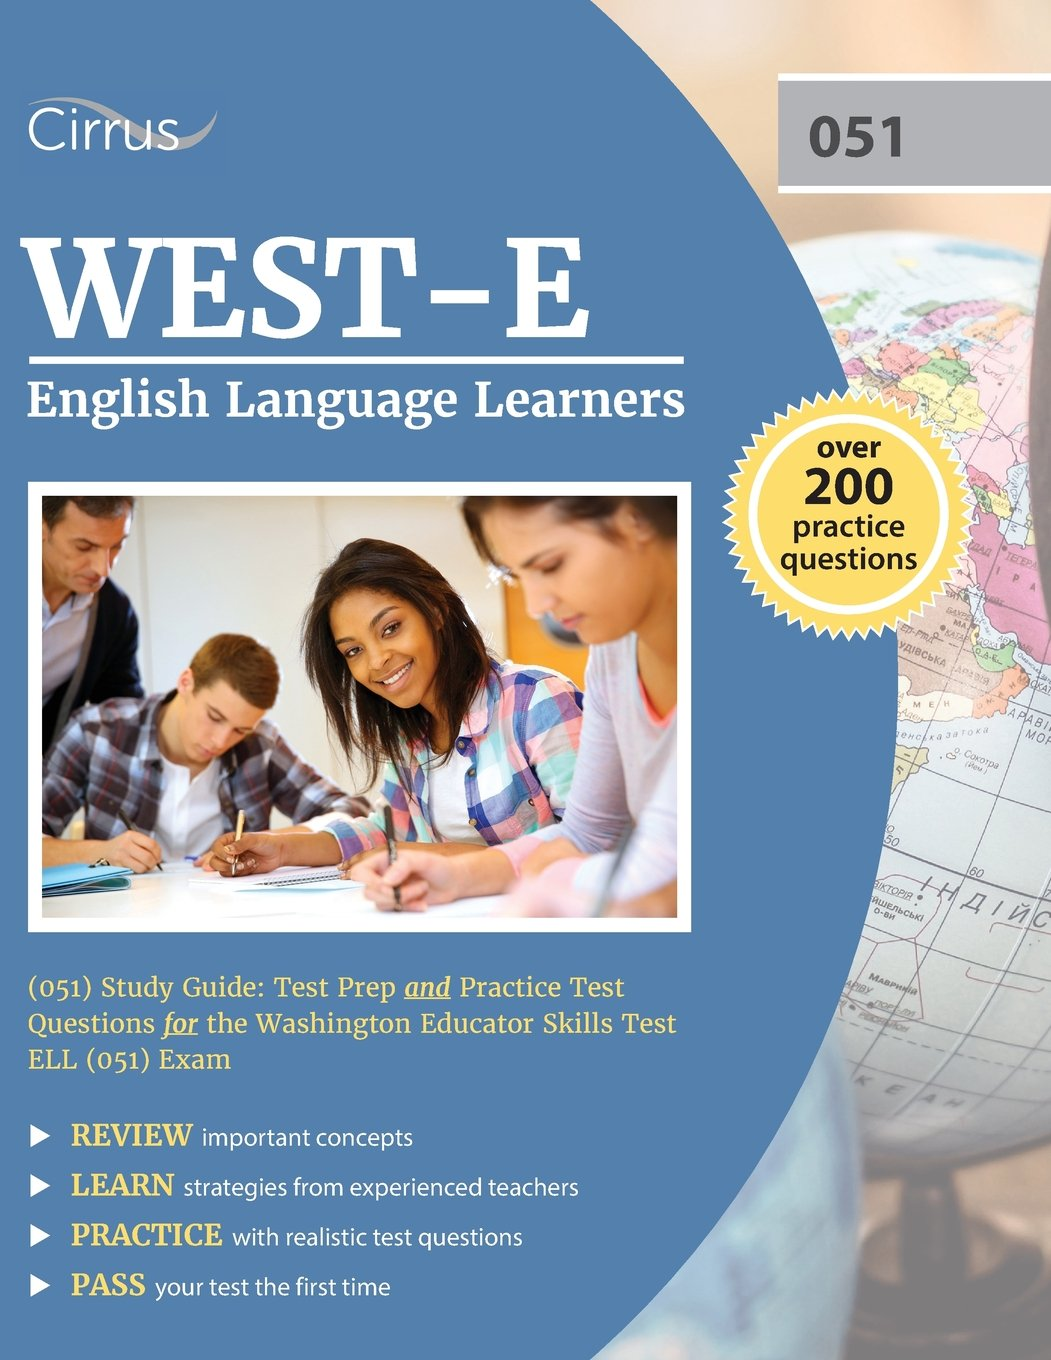 West-E English Language Learners (051) Study Guide: Test Prep and Practice Test Questions for the Washington Educator Skills Test Ell (051) Exam by Cirrus Test Prep